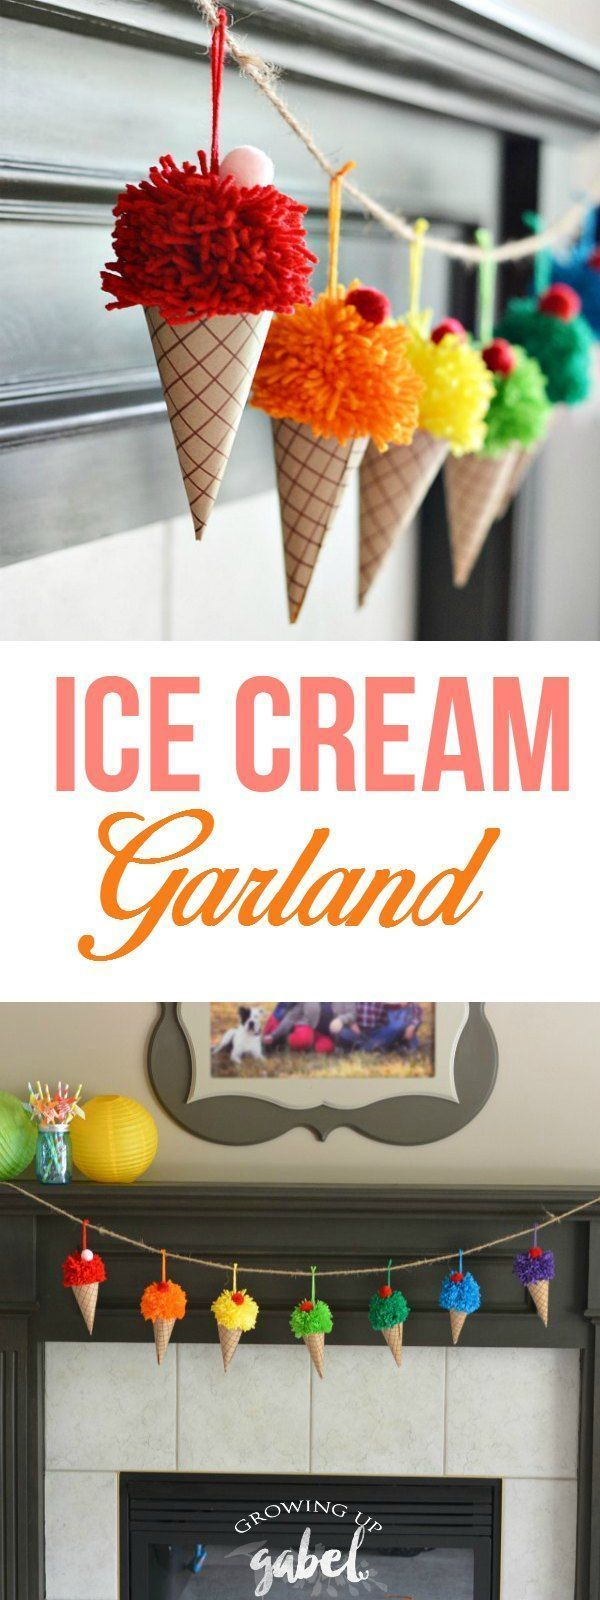 Make a bright and colorful ice cream cone garland out of yarn and paper! Perfect for a birthday or summer party - or just to brighten someone's day!